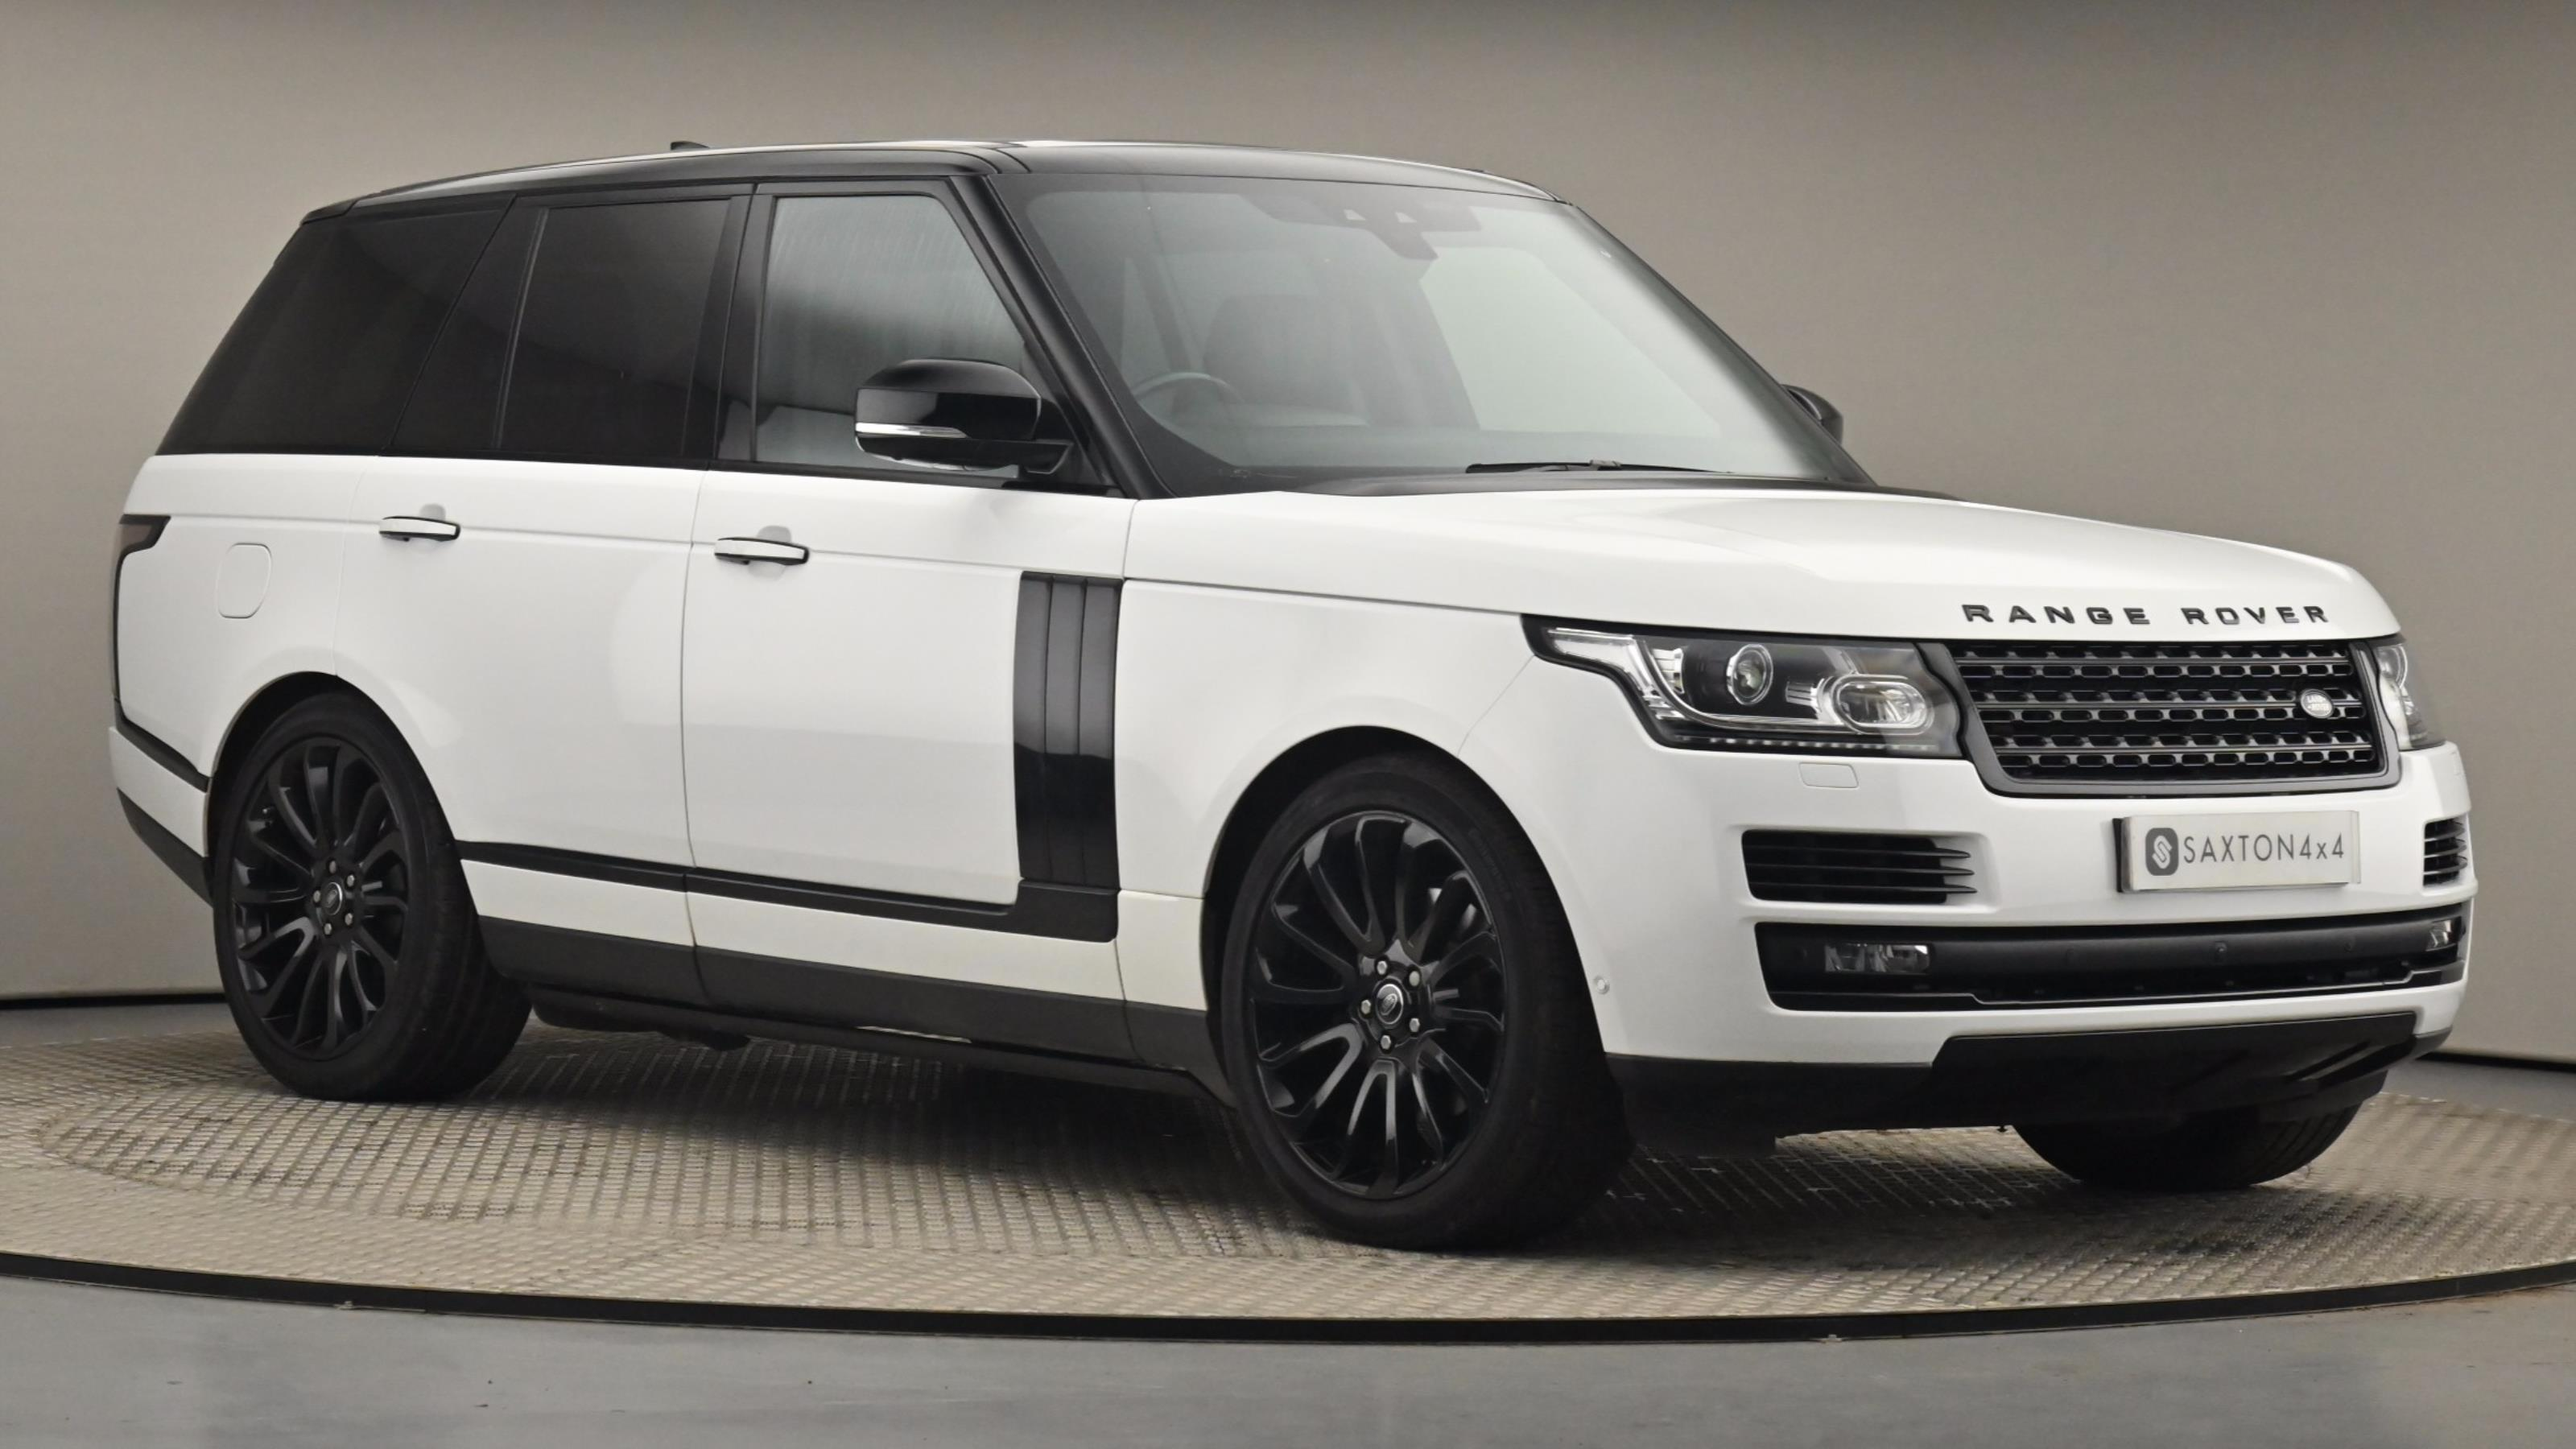 Used 2017 Land Rover RANGE ROVER 3.0 TDV6 Autobiography 4dr Auto WHITE at Saxton4x4